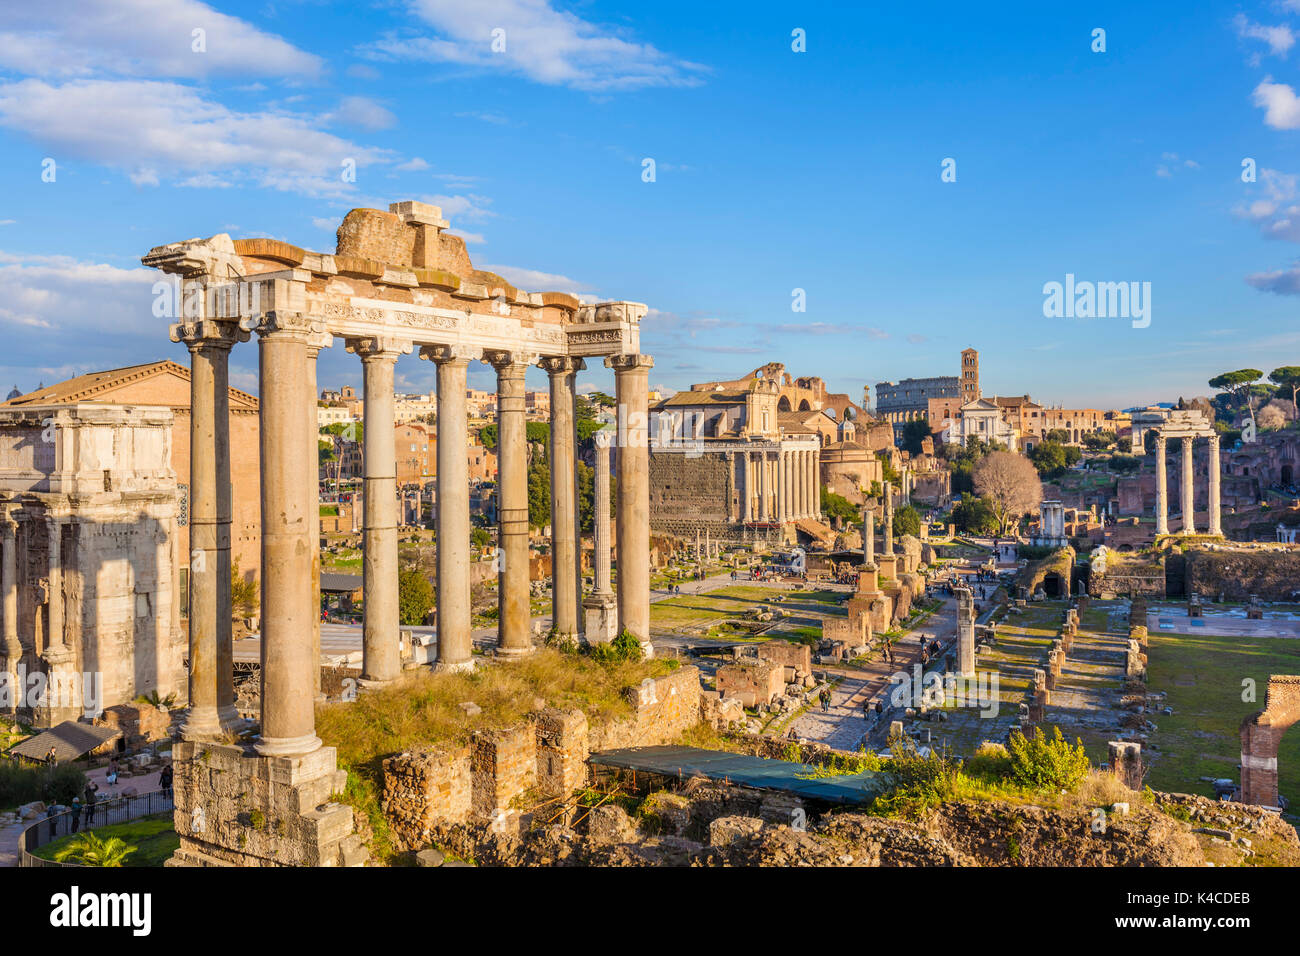 Rome Italy The columns of the Temple of Saturn and overview of the ruined Roman Forum, UNESCO World Heritage Site, - Stock Image